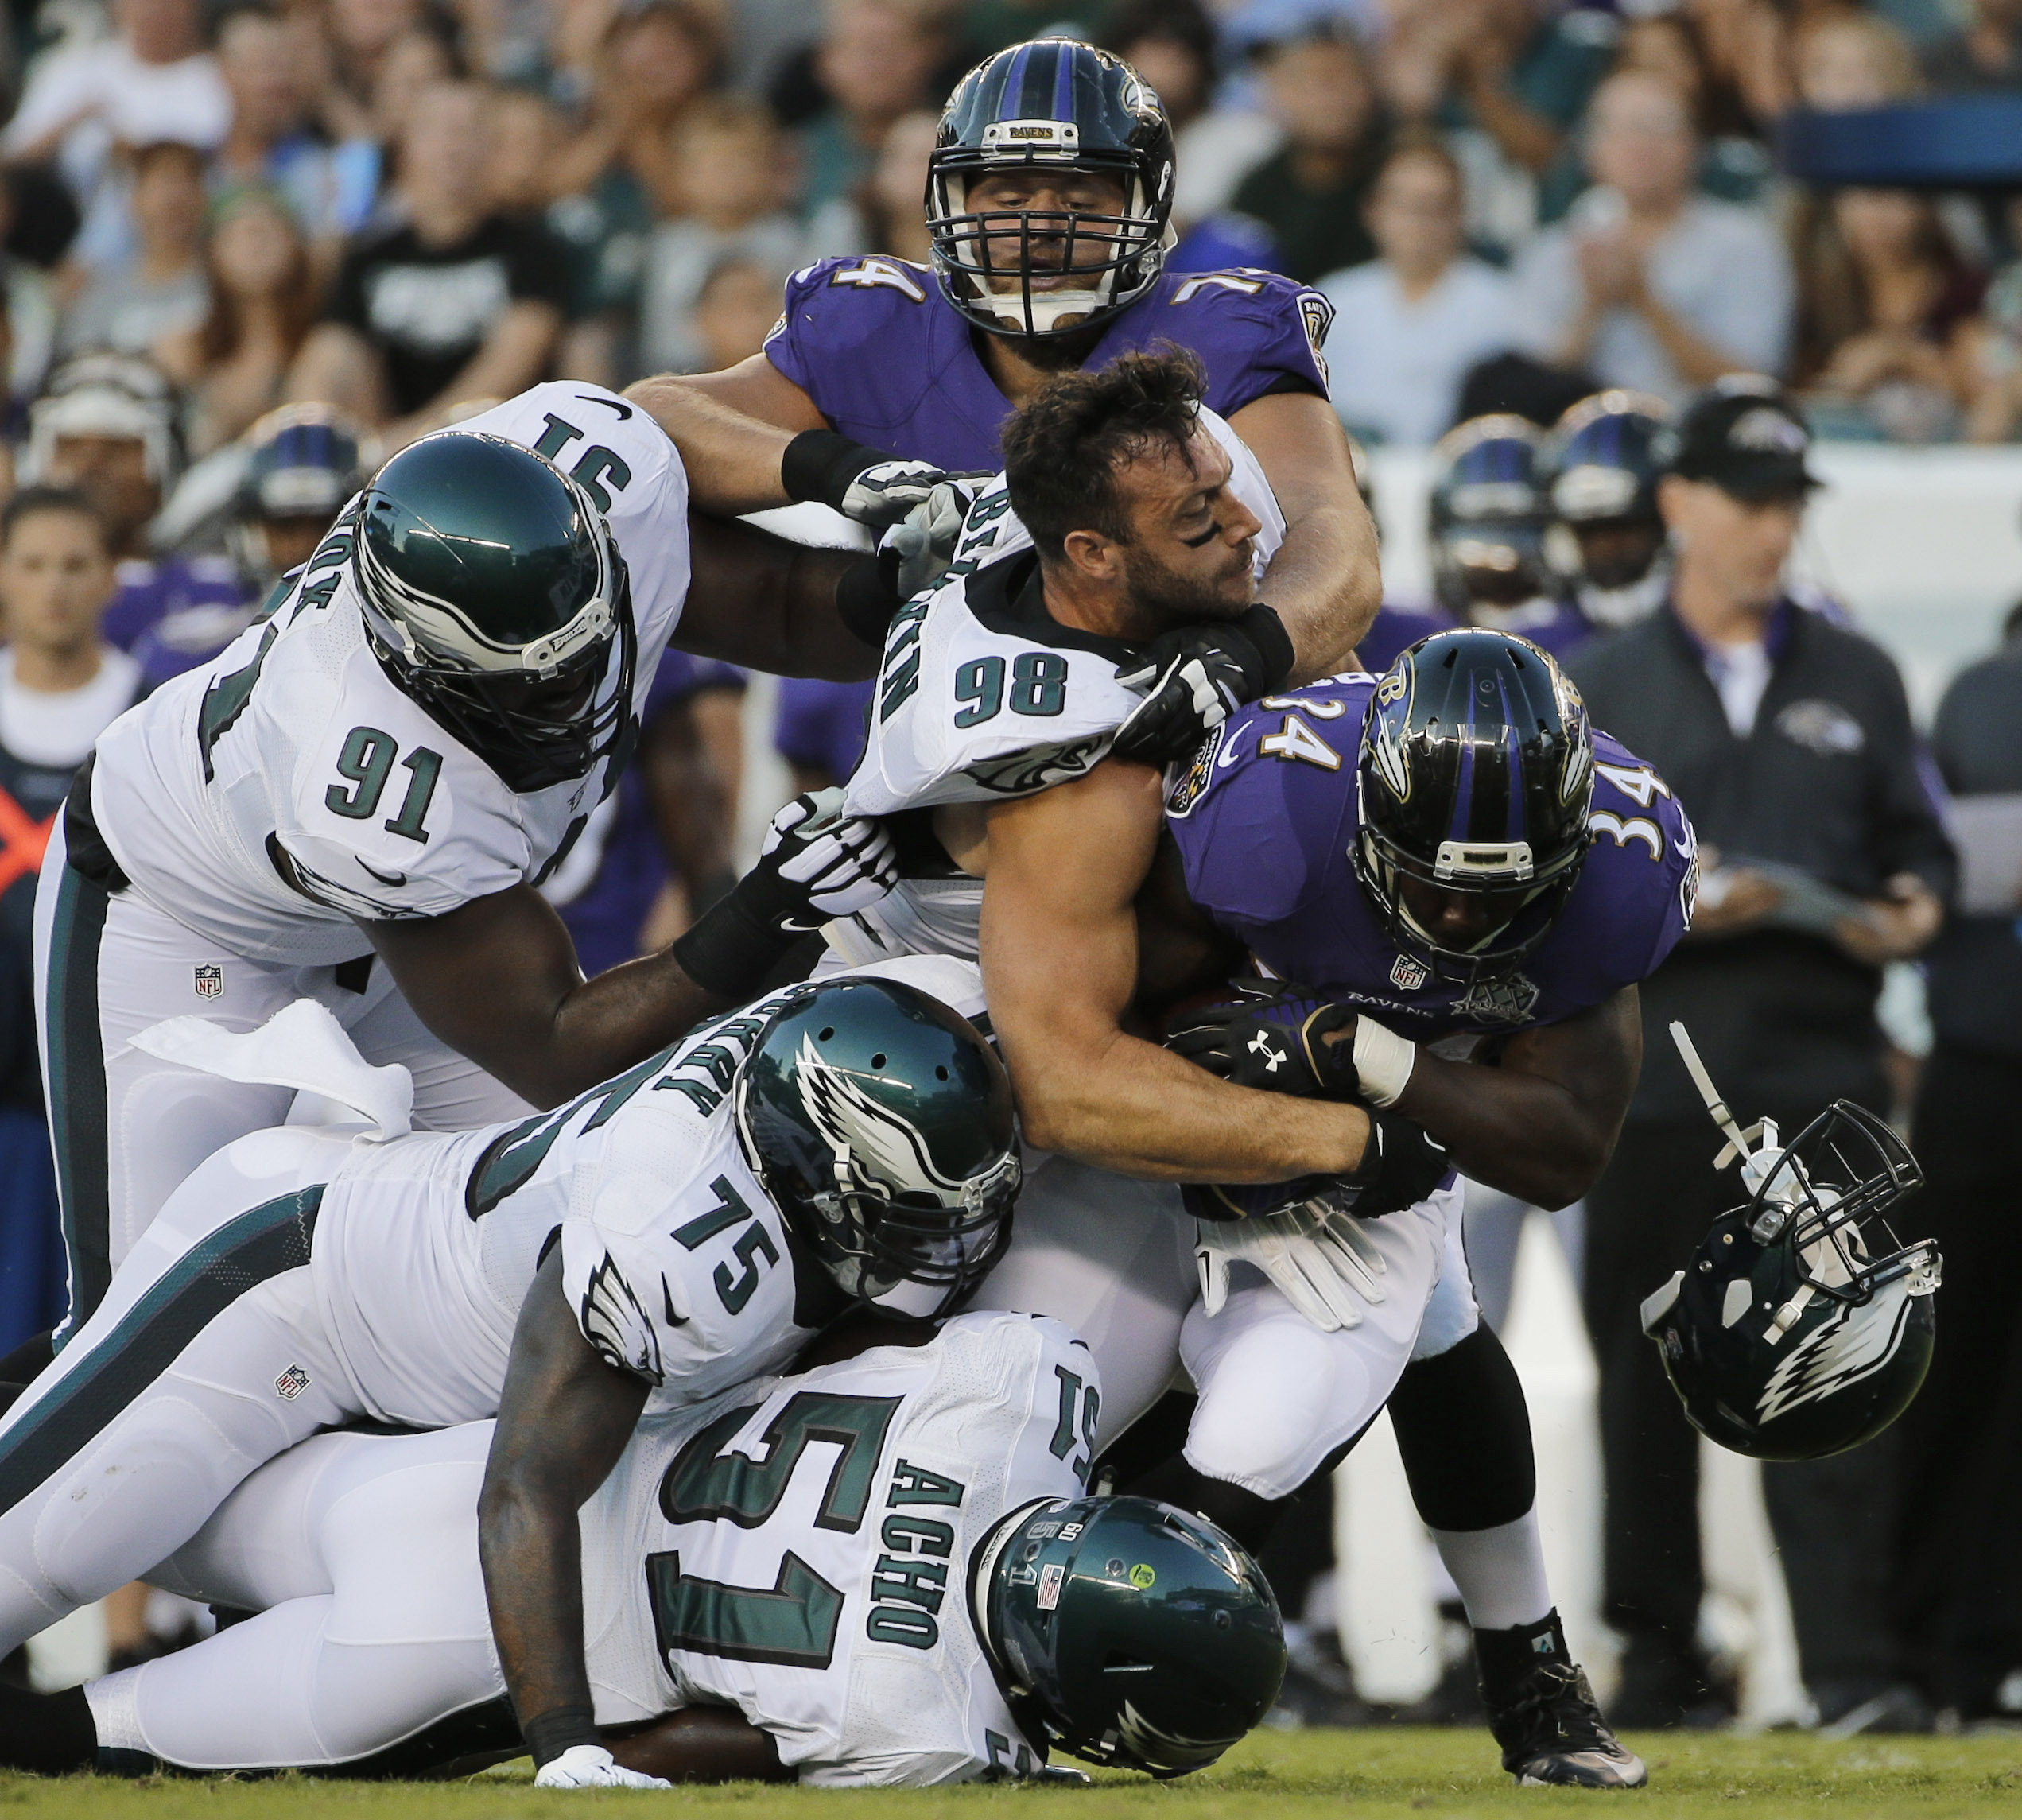 Philadelphia Eagles' Connor Barwin (98) loses his helmet as he combines with Emmanuel Acho (51), Vinny Curry (75) and Fletcher Cox (91) to tackle Baltimore Ravens' Lorenzo Taliaferro (34) during the first half of a preseason NFL football game, Saturday, A